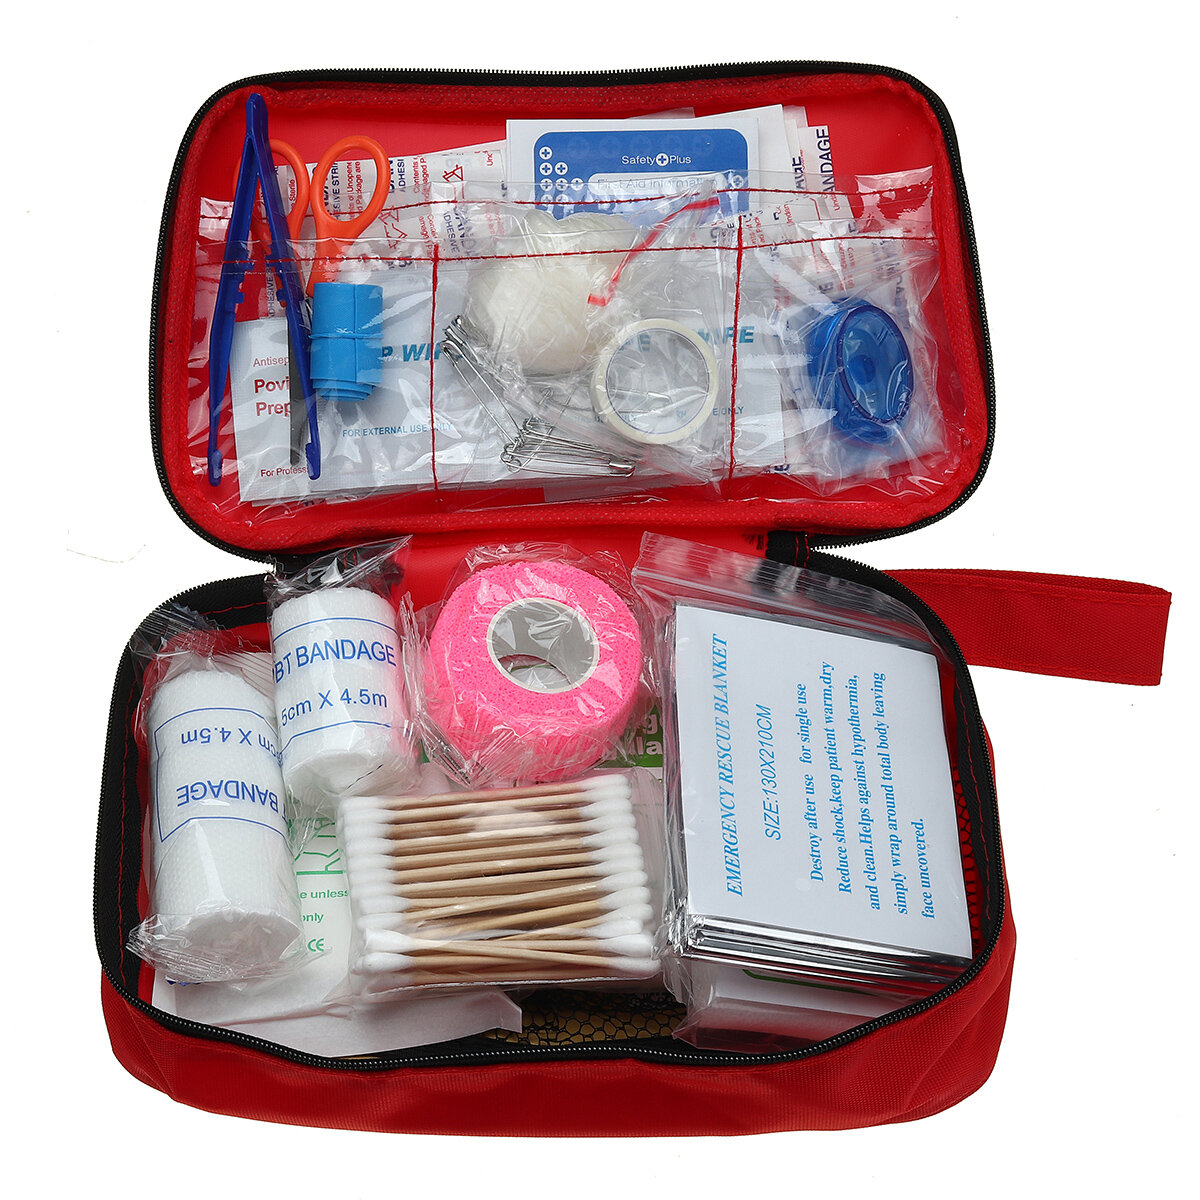 200/45First Aid Kit Outdoor Emergency Survival Kit Gear for Home Office Camping Climbing, Banggood  - buy with discount